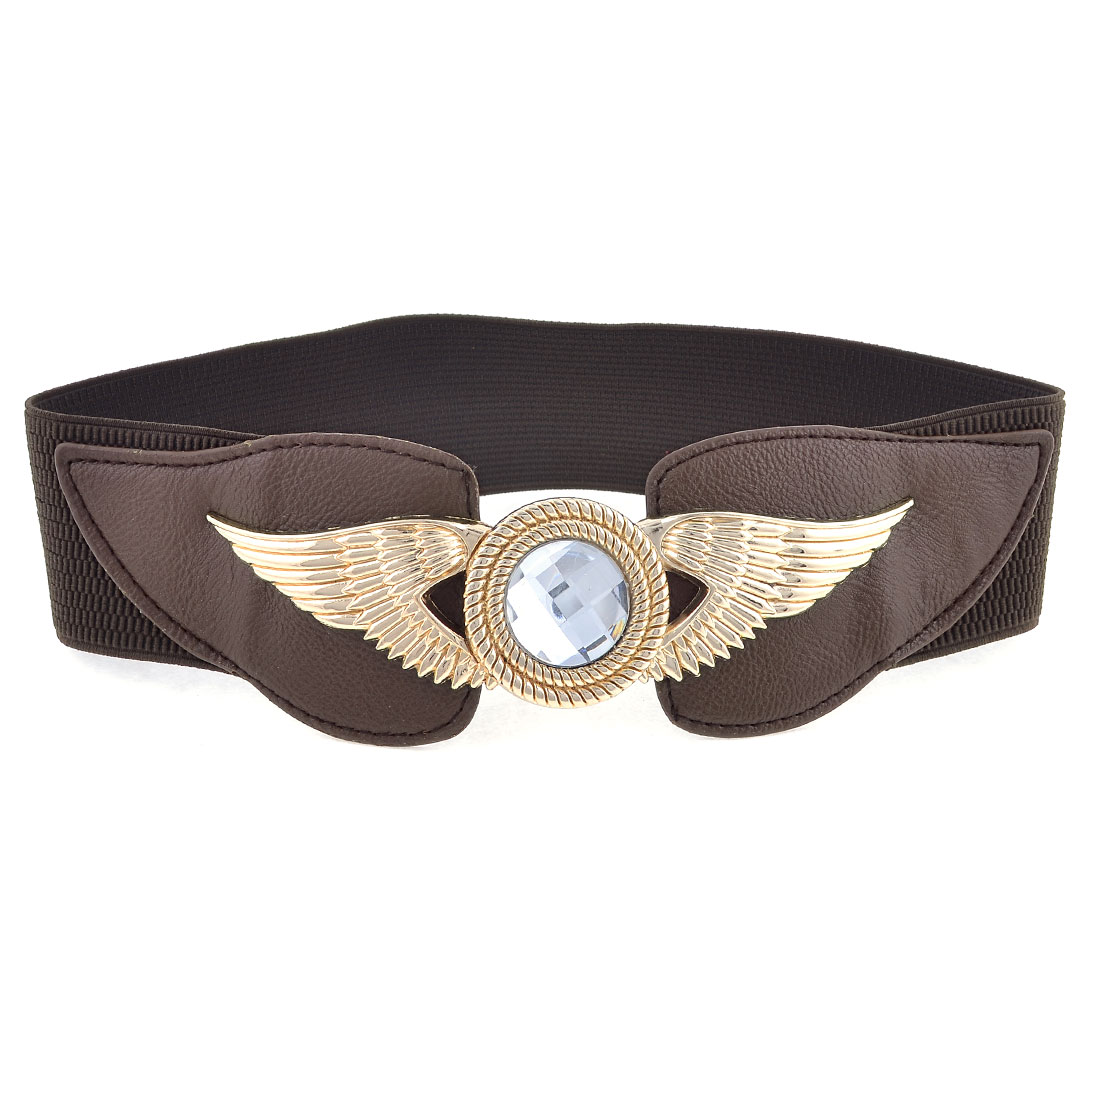 Women Bling Faux Crystal Eagle Design Buckle Stretchy Waist Belt Dark Brown